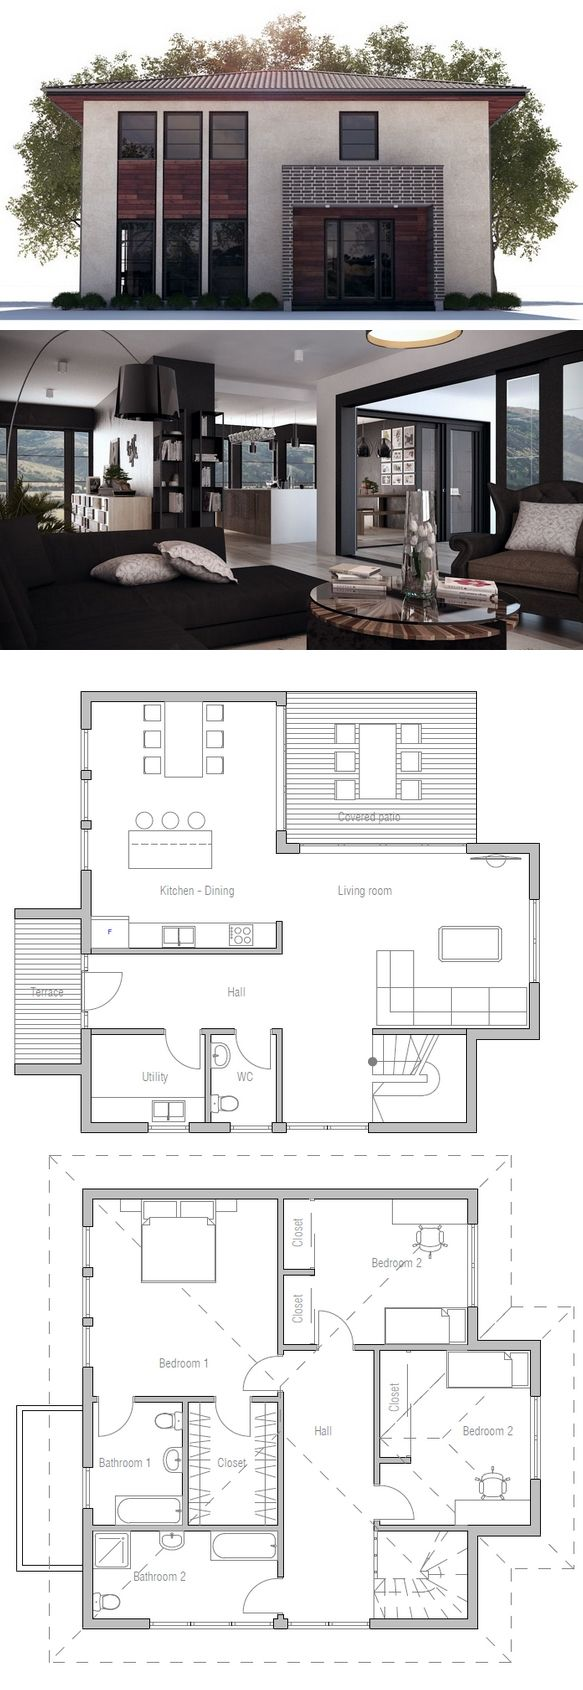 House Plan from ConceptHome.com, House Plan 2014